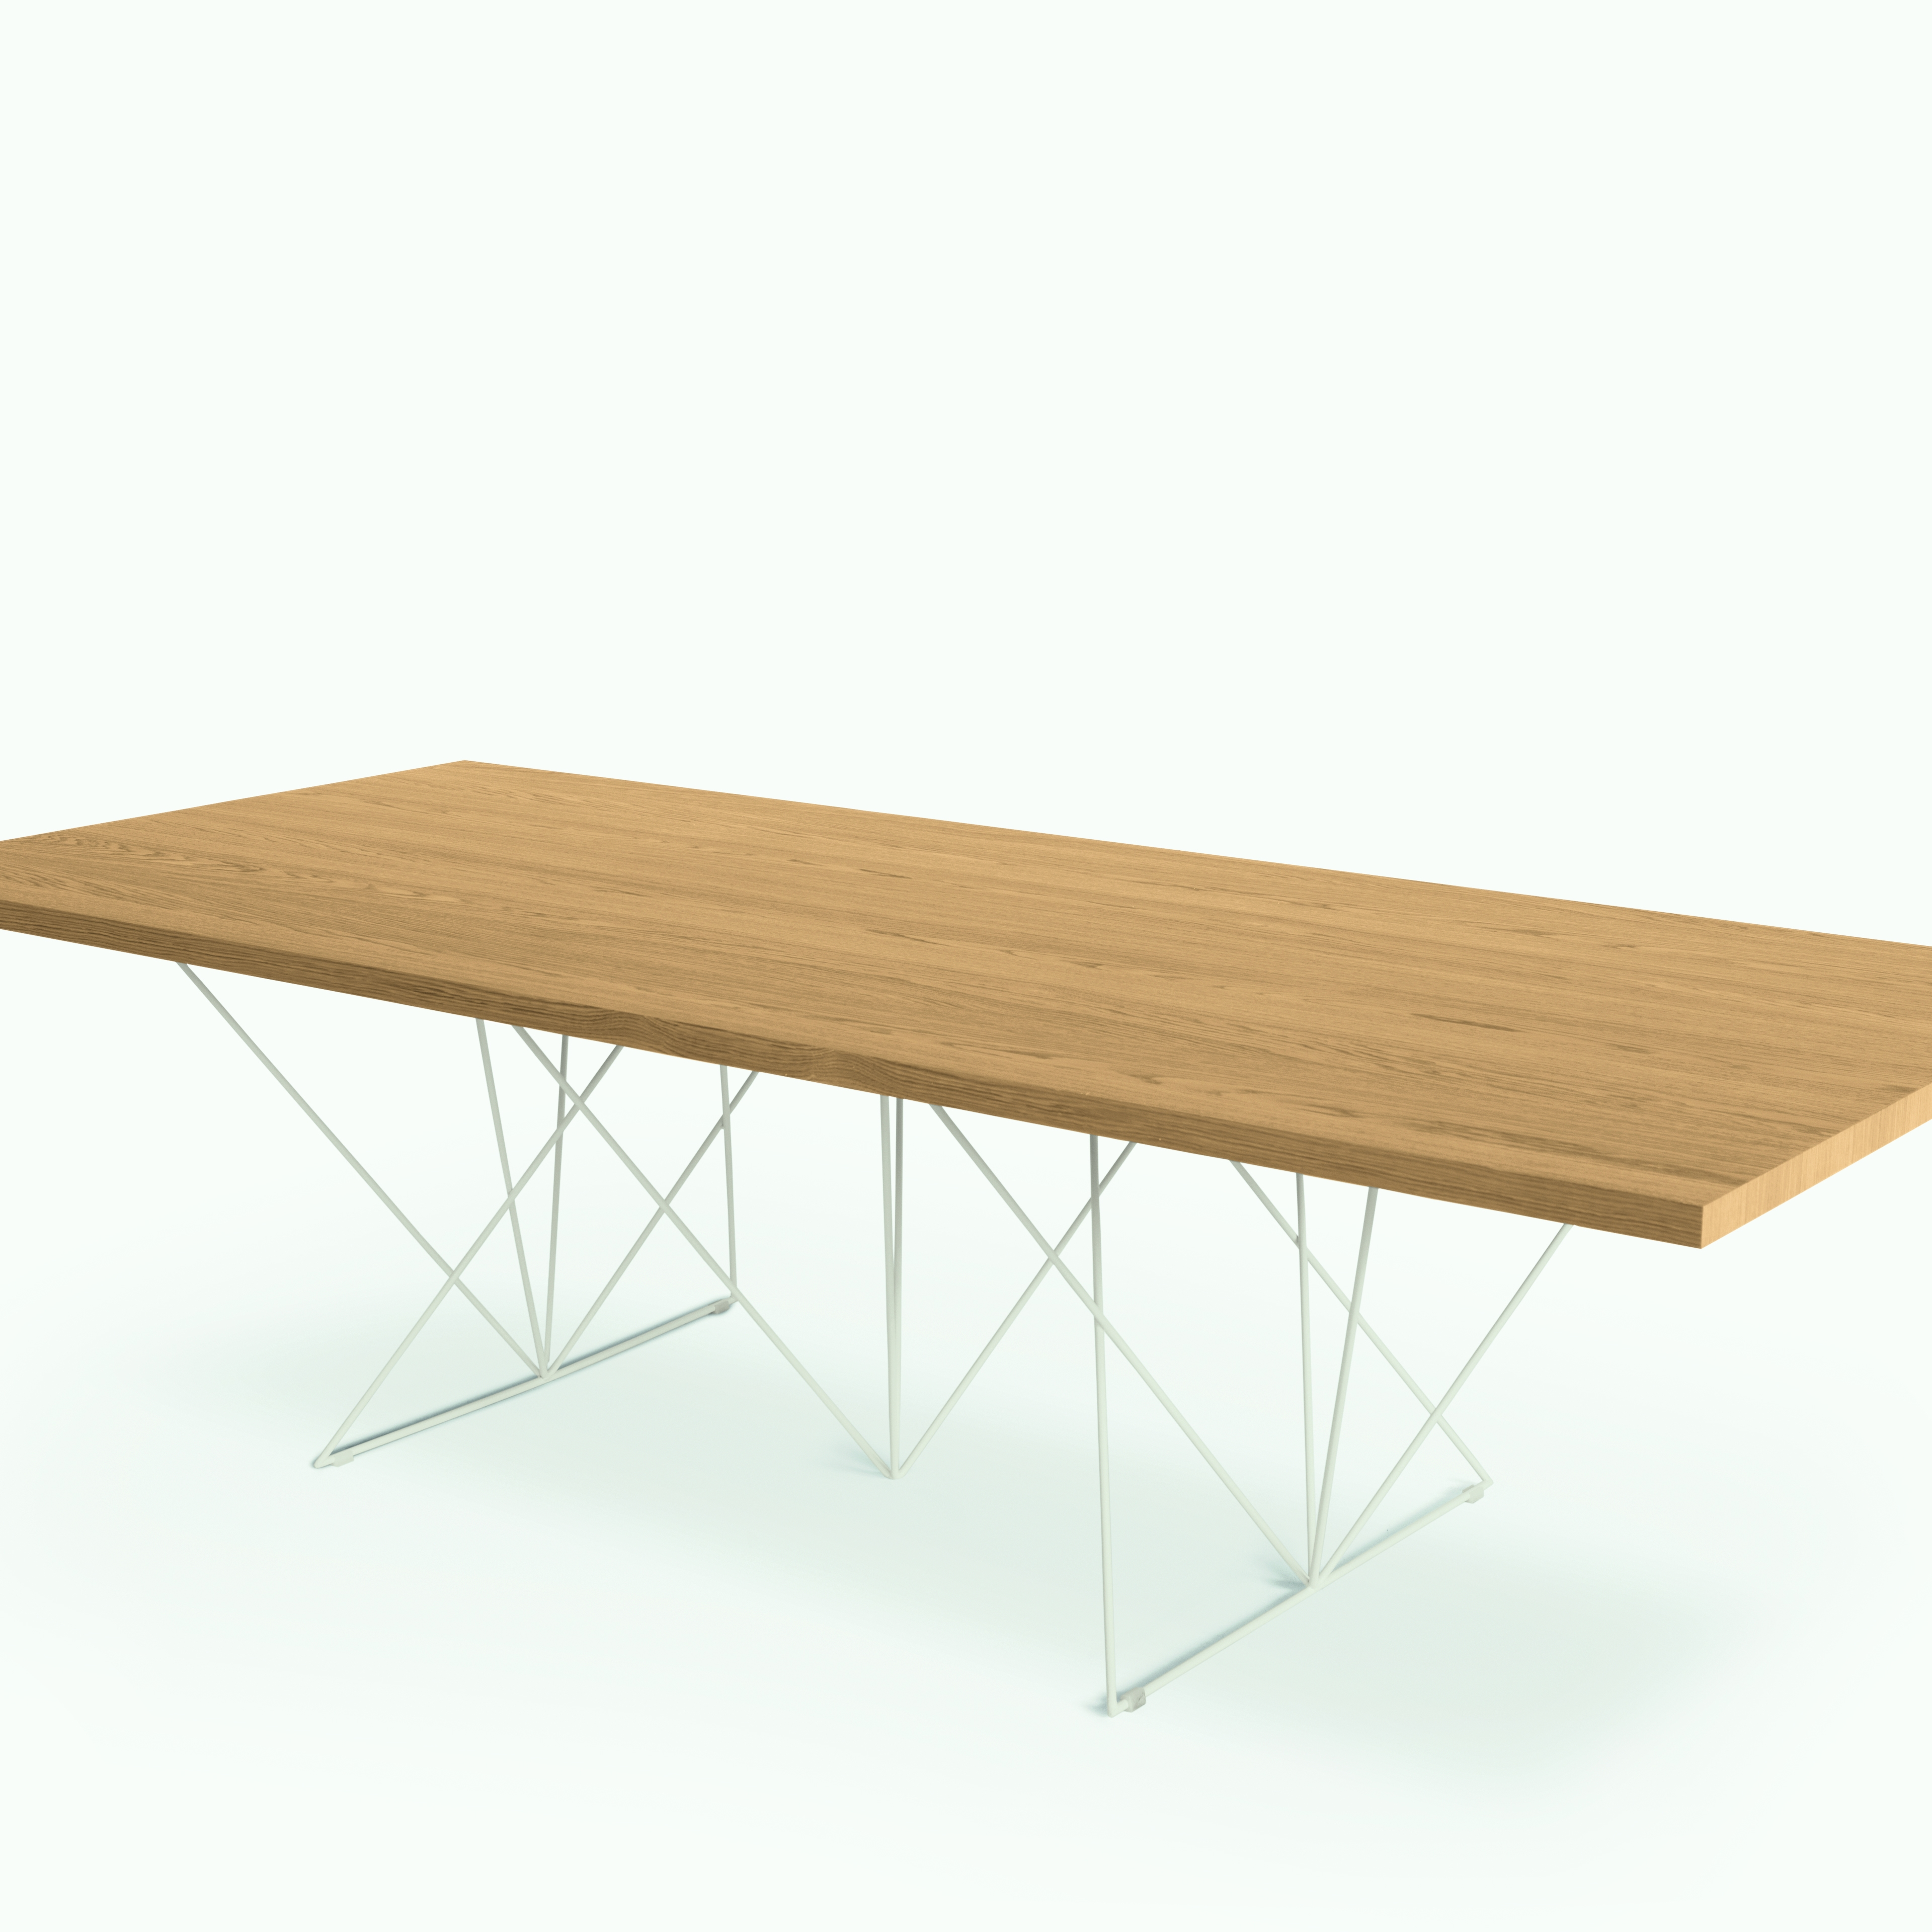 Sedit Prsima Table